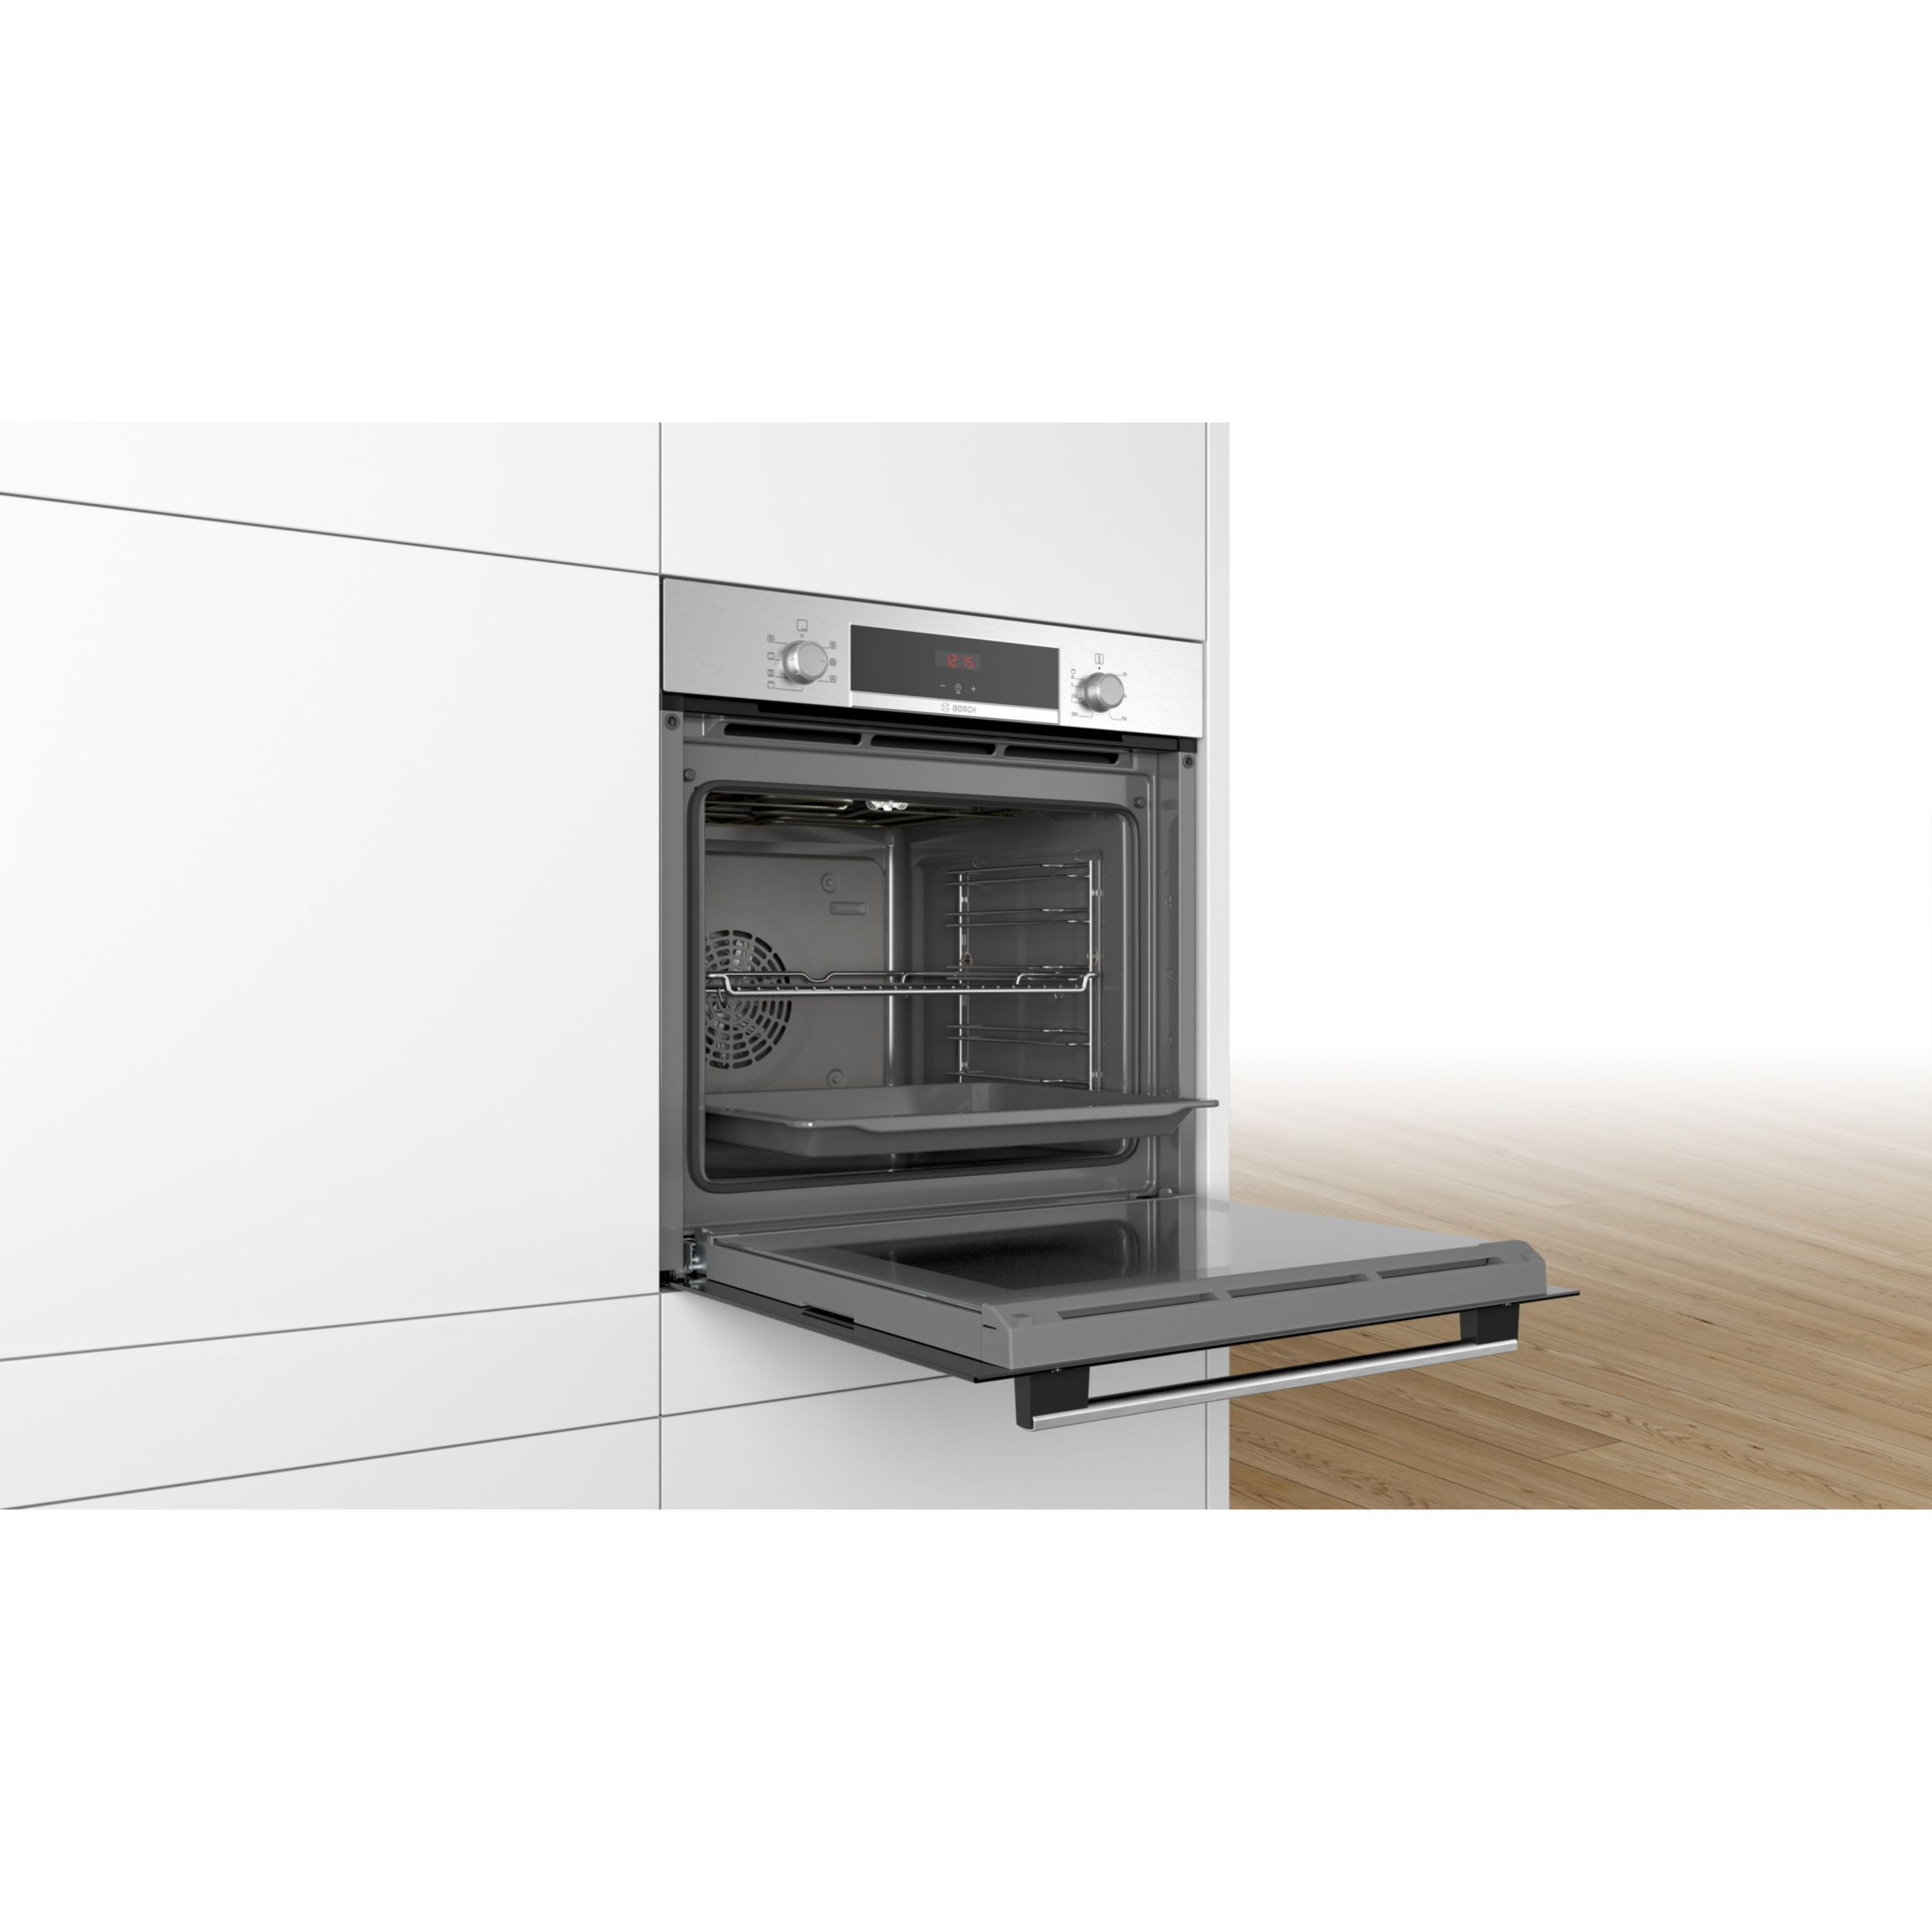 Bosch Hbs534bs0b Built In Single Oven Stainless Steel Single Oven Stainless Steel Oven Built In Ovens